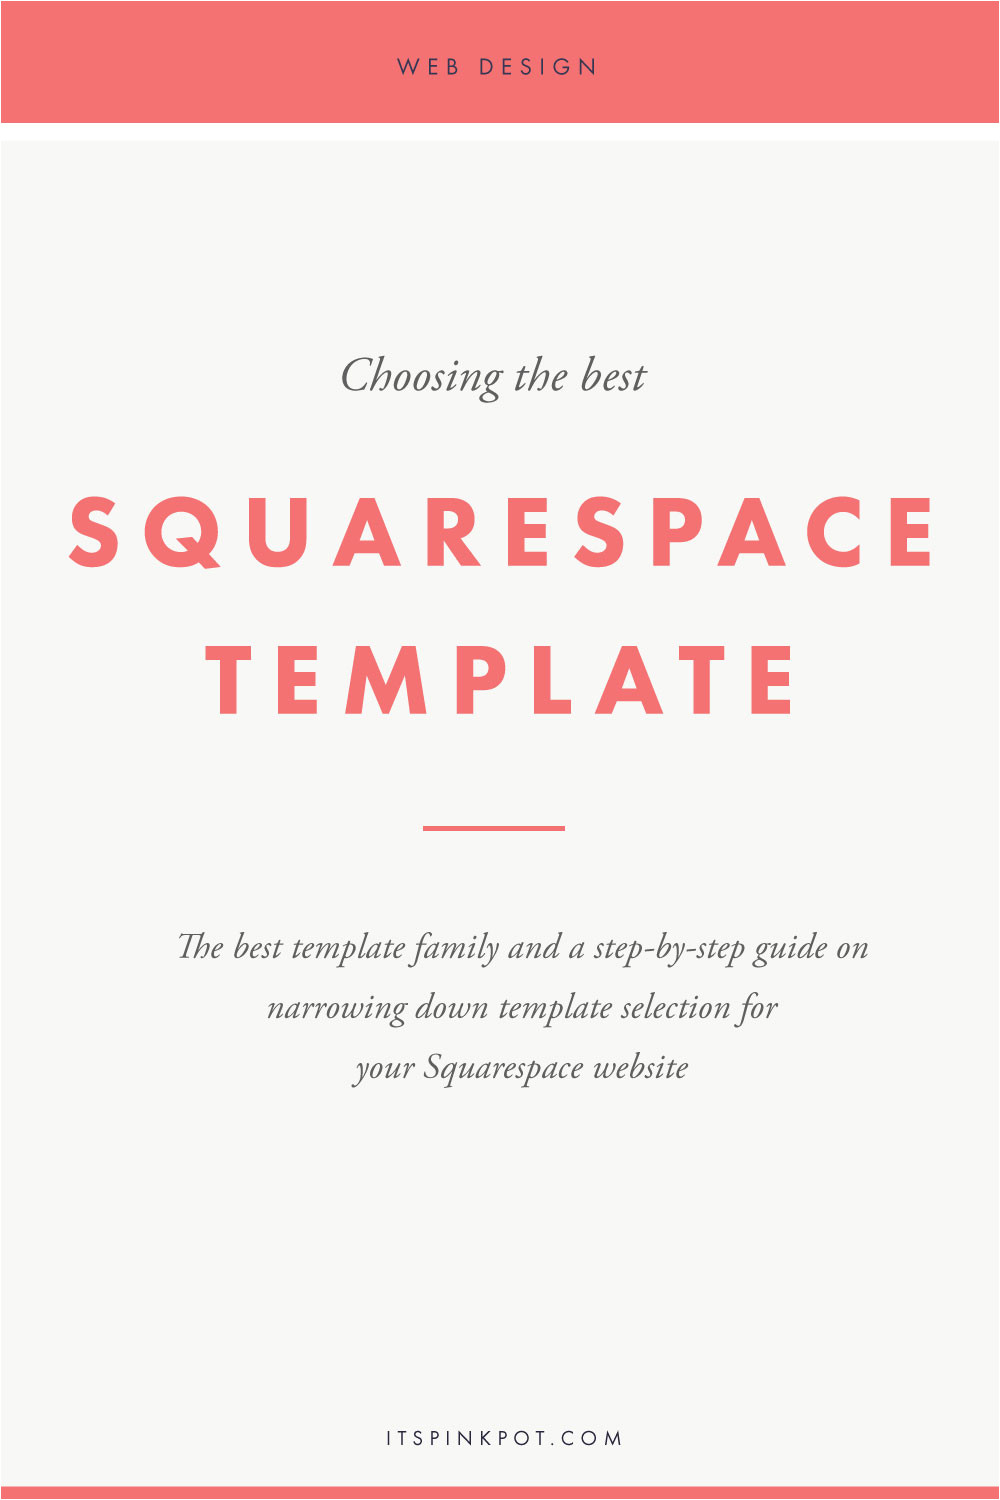 Best Squarespace Template for Video Blog Pinkpot Studio